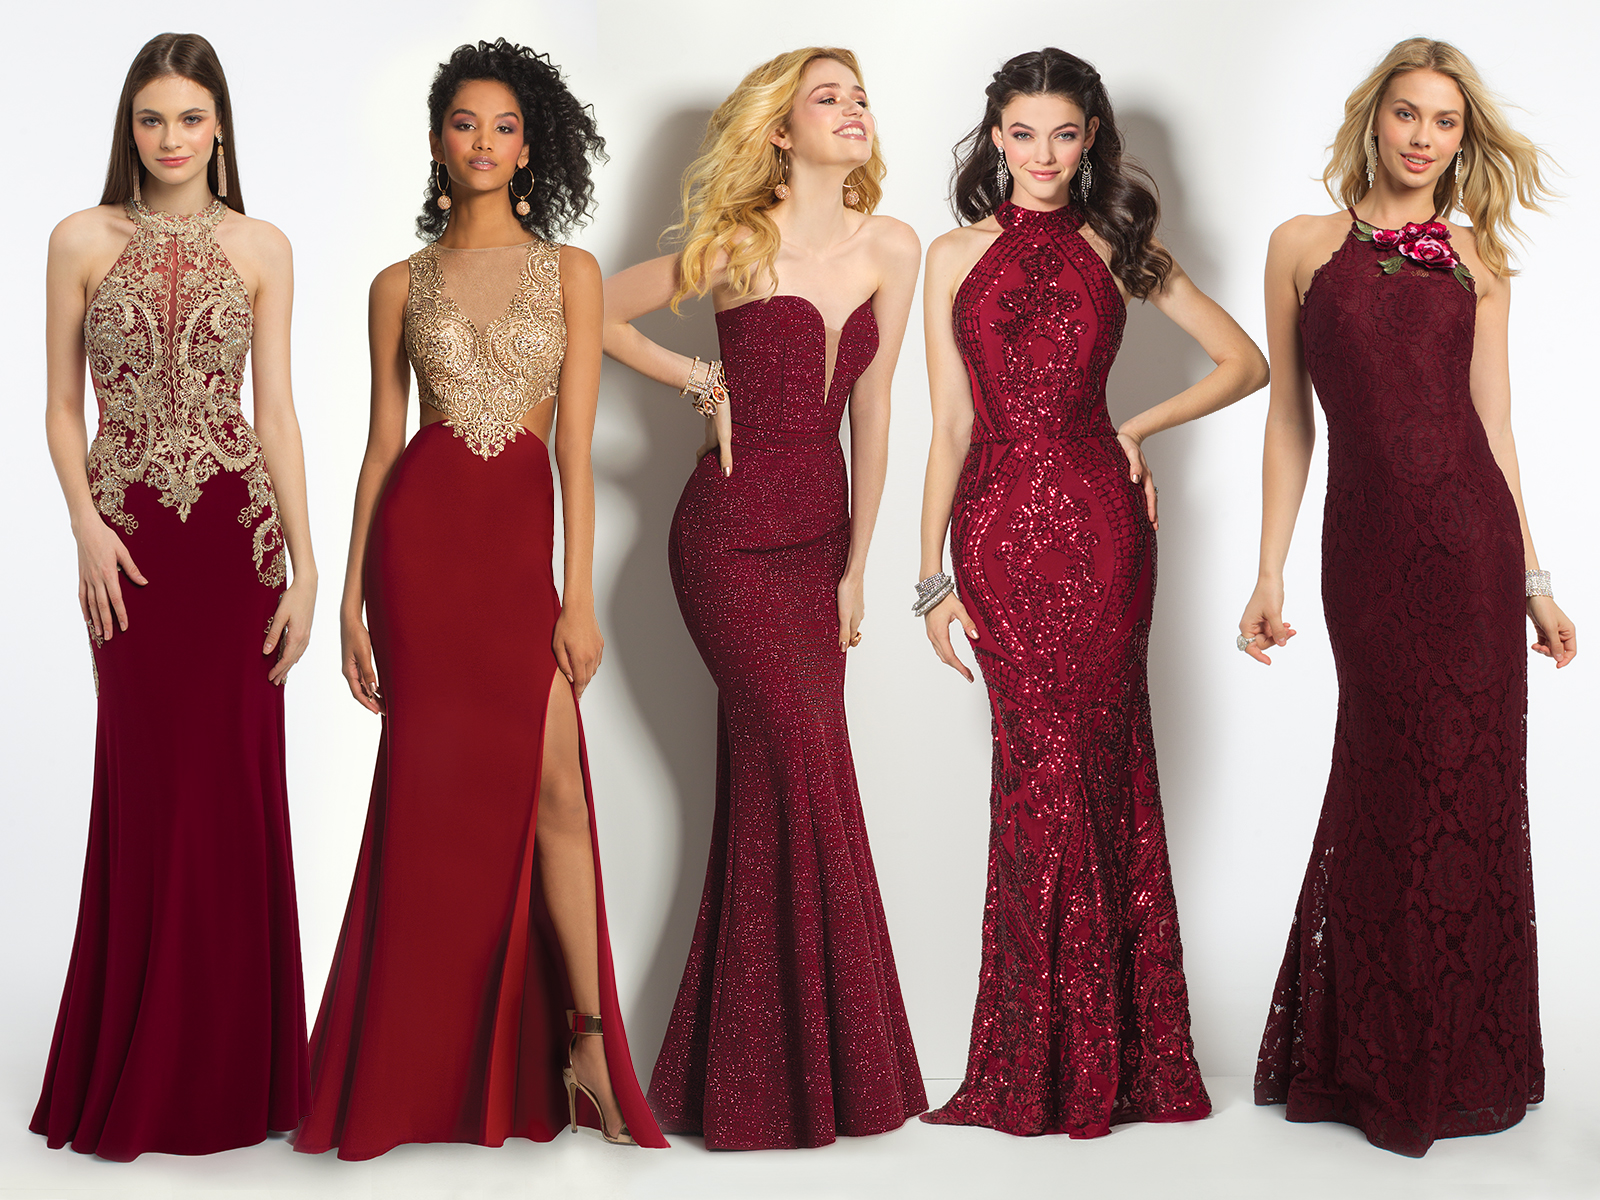 Red Prom Dresses Inspired by V-Day | Camille La Vie